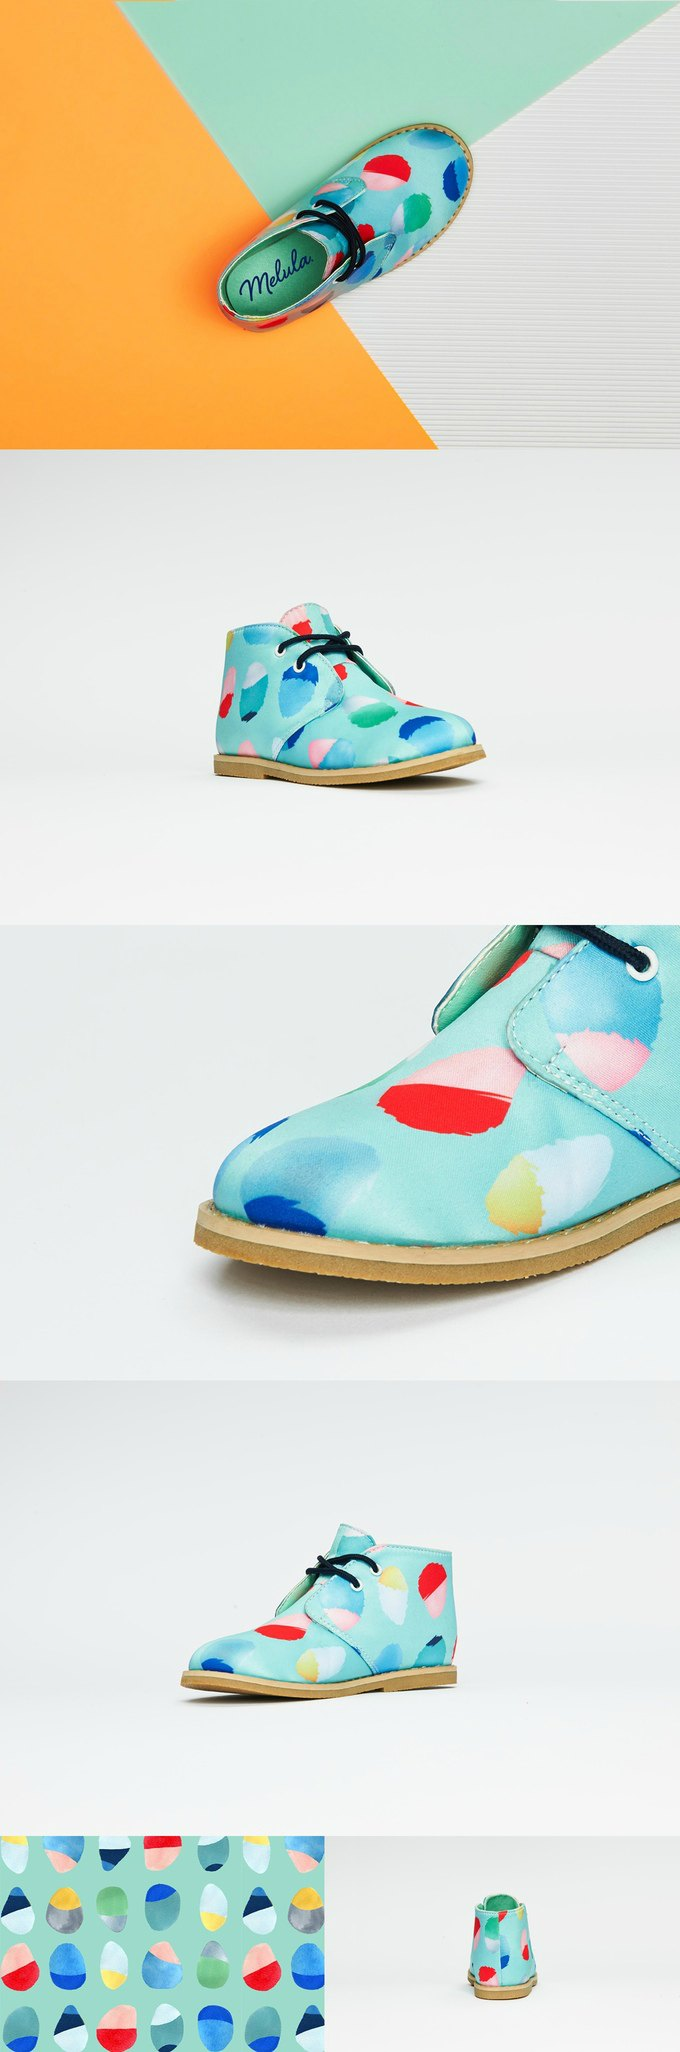 melula-childrens-shoes